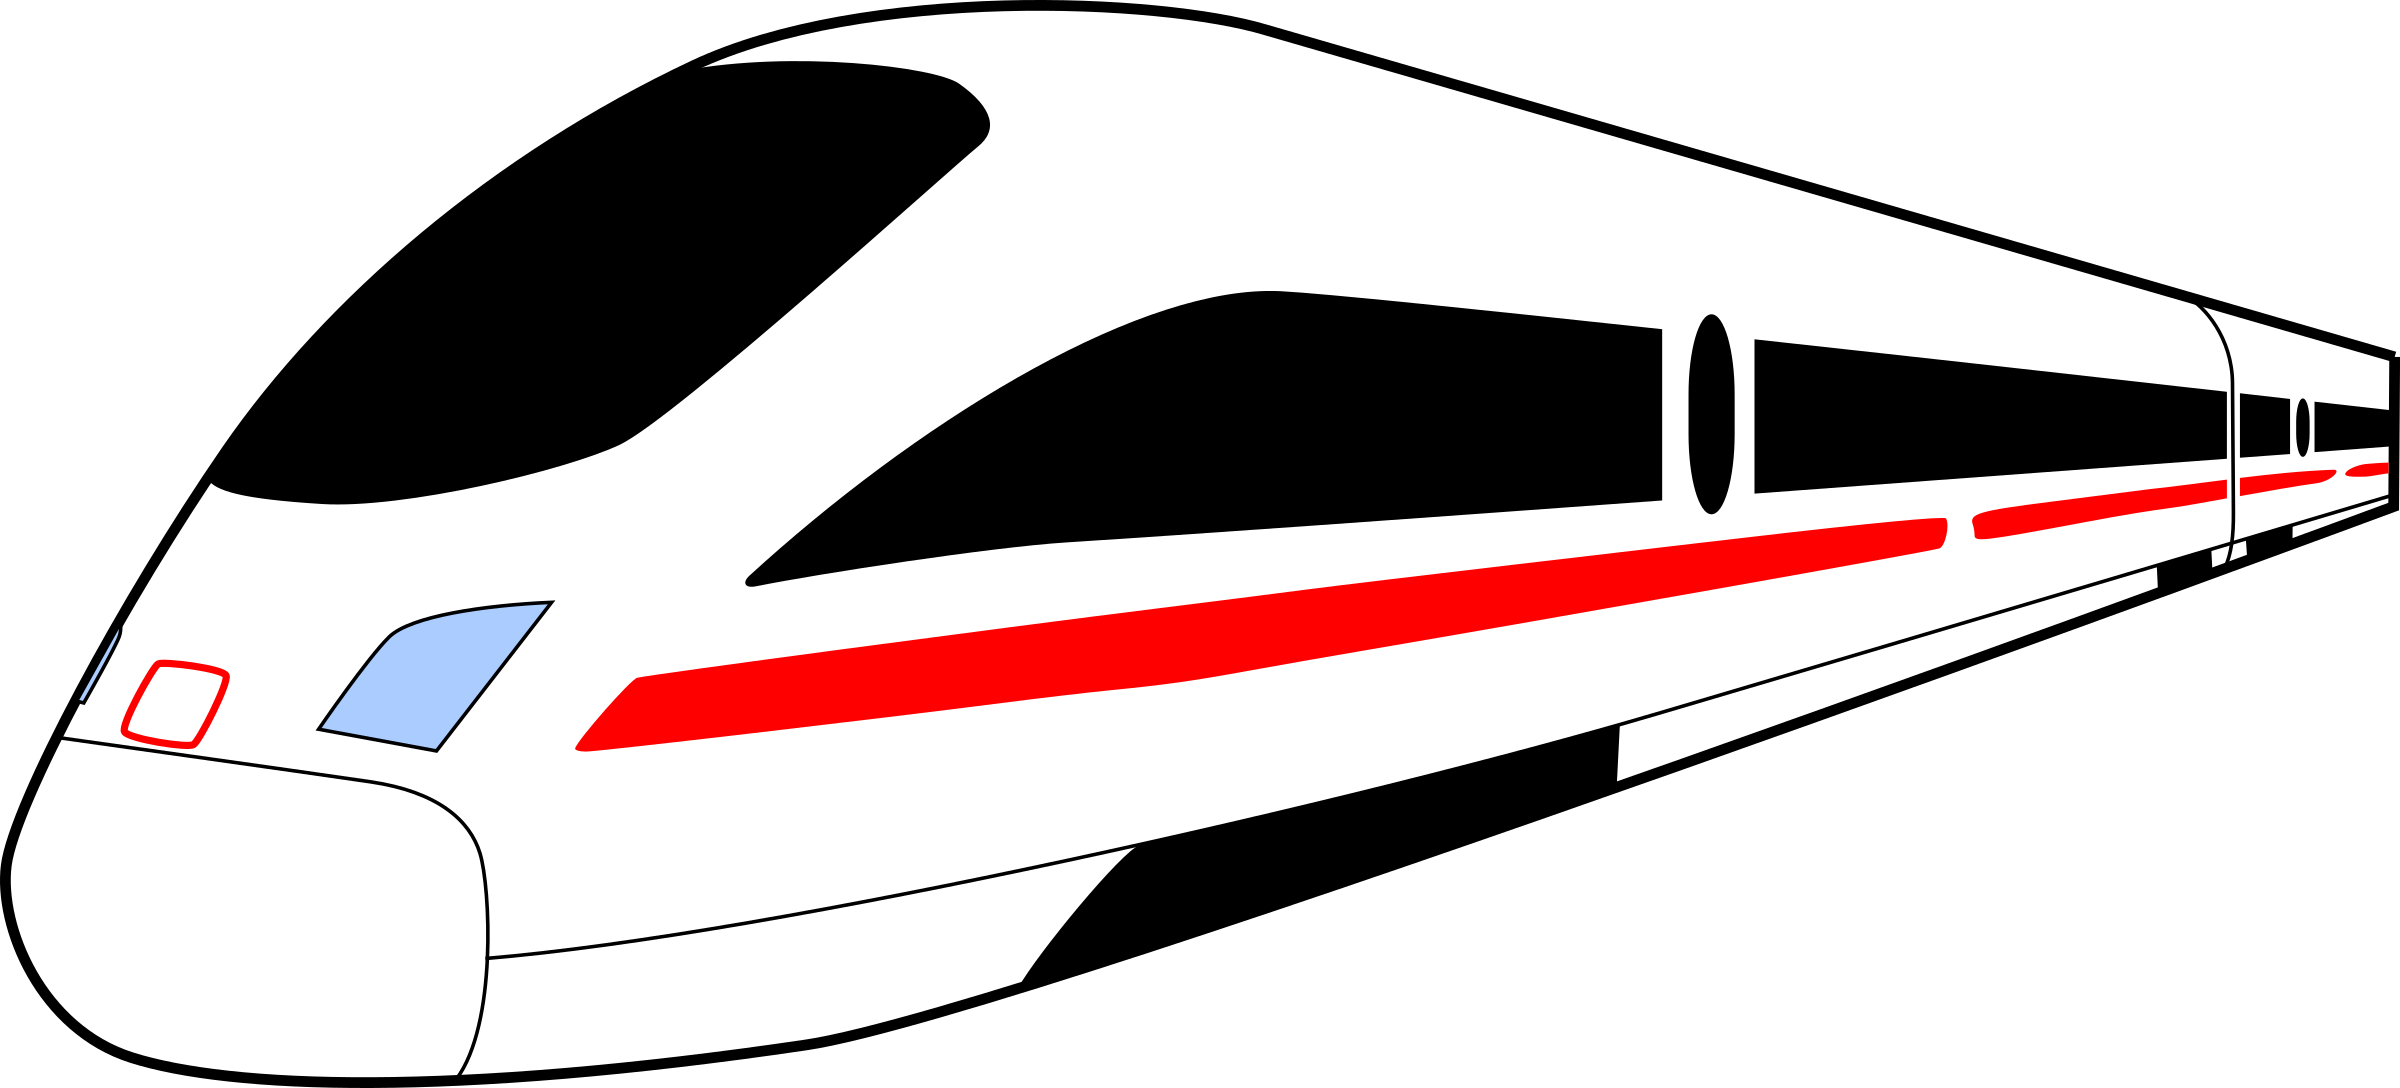 Ice train clipart